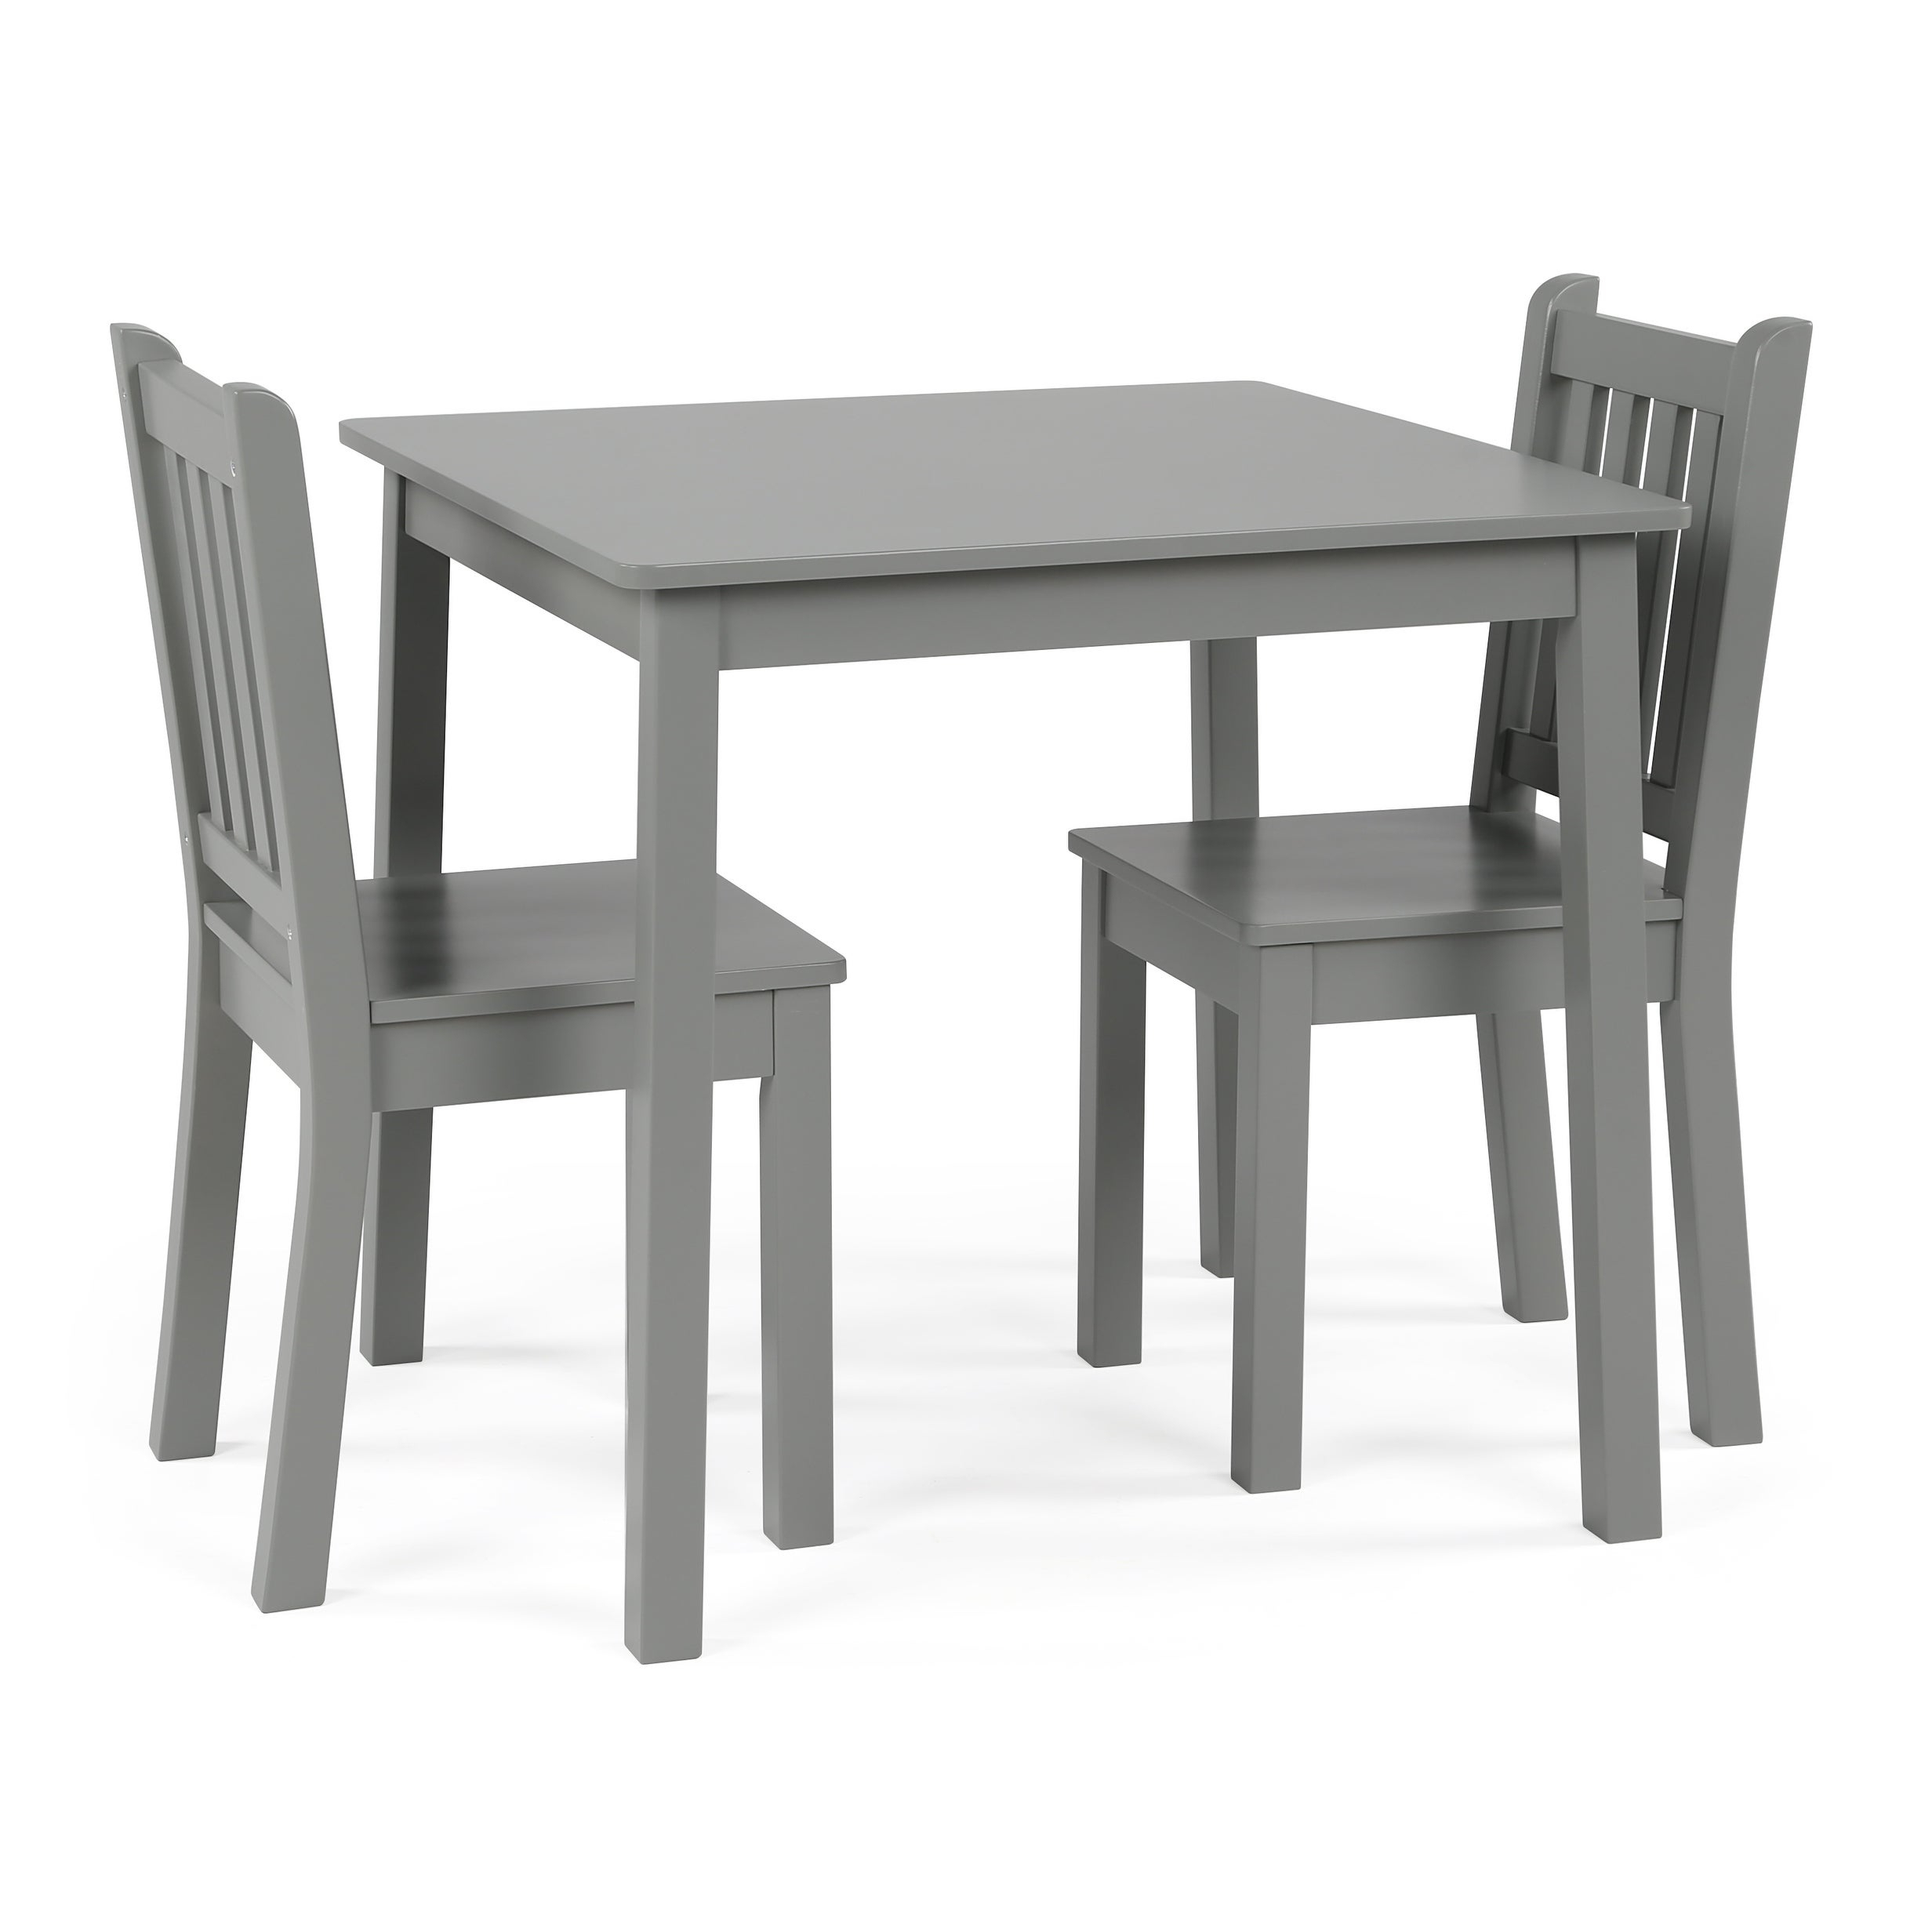 Wood Kids Table & Chairs 3 Piece Set, Grey Regarding Most Current Springfield 3 Piece Dining Sets (View 10 of 20)